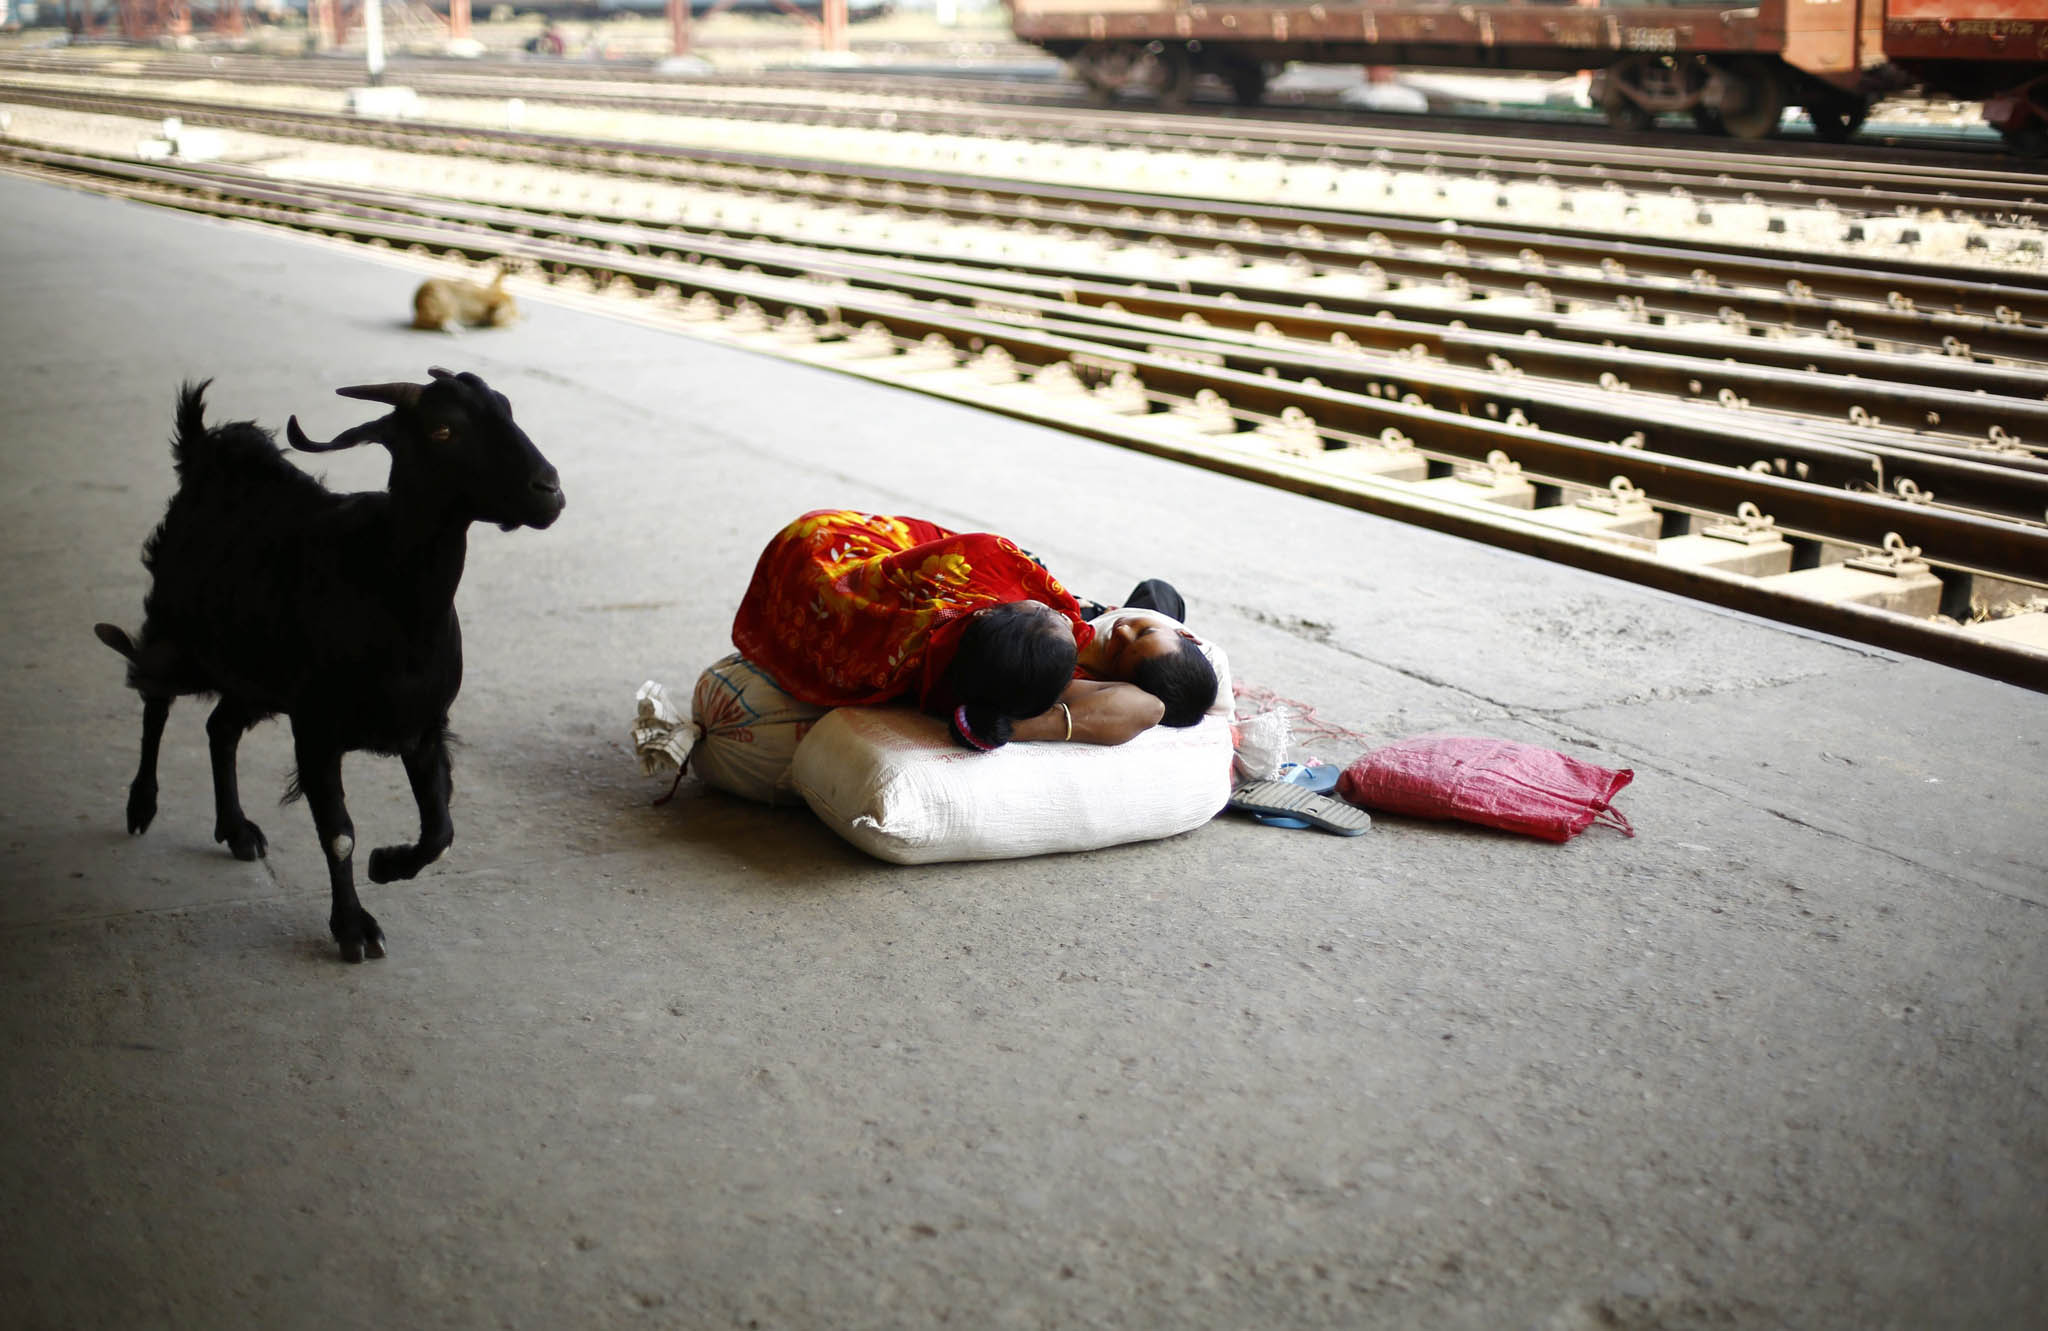 Strike in Bangladesh ...epa04585515 A woman sleeps with her child at the platform during the country wide strike called by the Bangladesh Nationalist Party (BNP) at the Kamlapur railway station in Dhaka, Bangladesh, 26 January 2015. Violence erupted in different parts of the country after former prime minister Khaleda Zia called a nationwide transport blockade on 05 January, the first anniversary of a controversial election that her Bangladesh Nationalist Party (BNP) and allies boycotted. According to official estimates, at least 30 people have since been killed in firebomb attacks on passenger buses, cars and trucks as vehicles plied on highways in defiance of the blockade